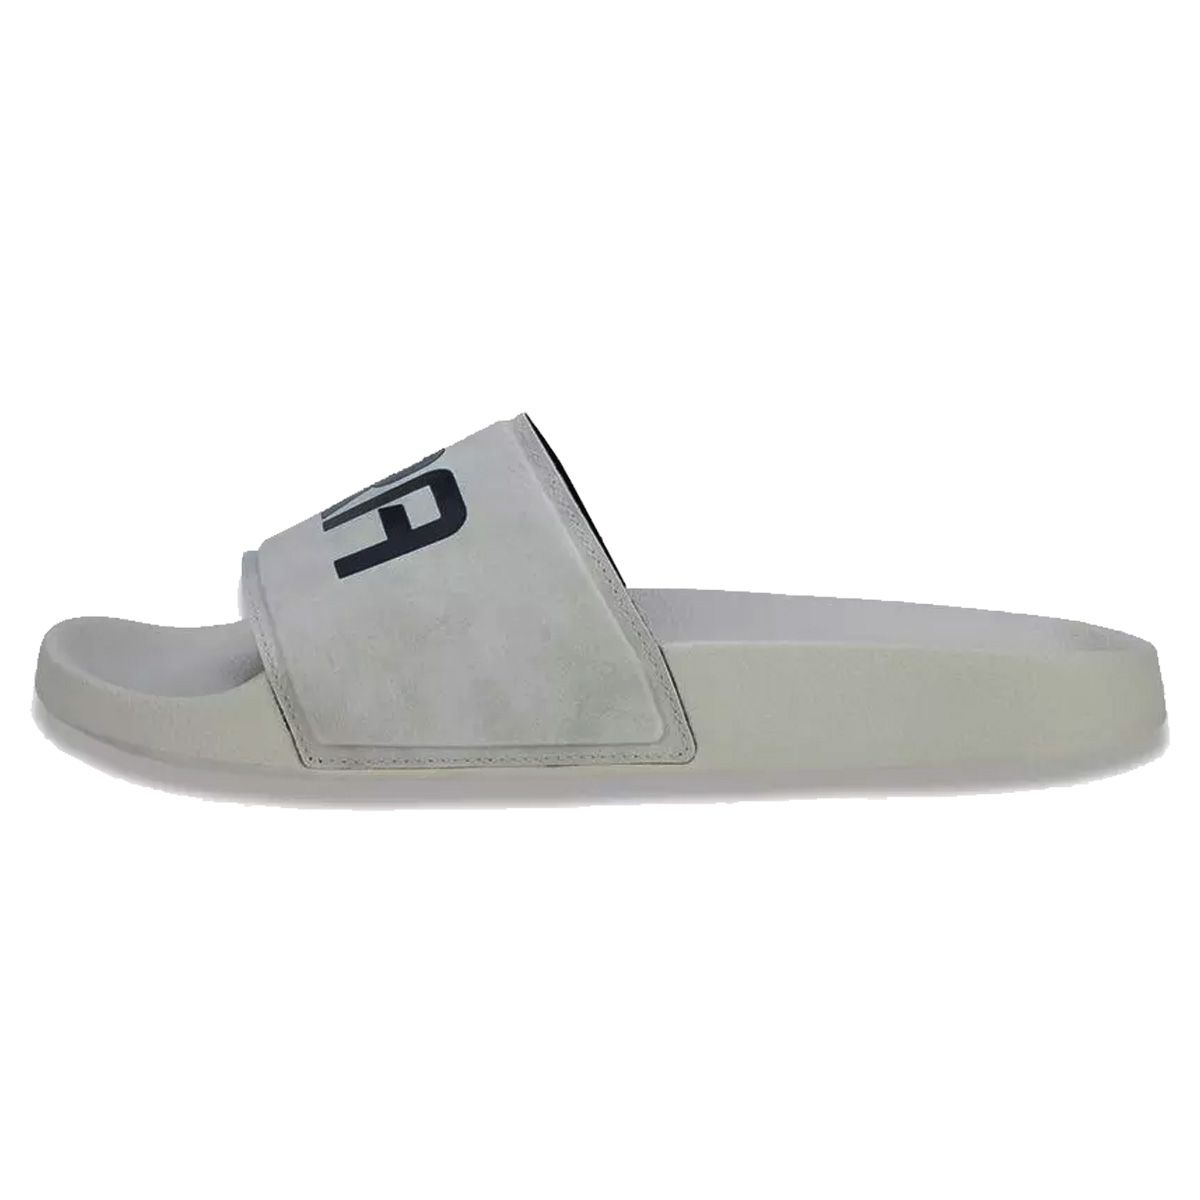 Chinelo New Era Slide Tipia Brand Flag Colors Bege